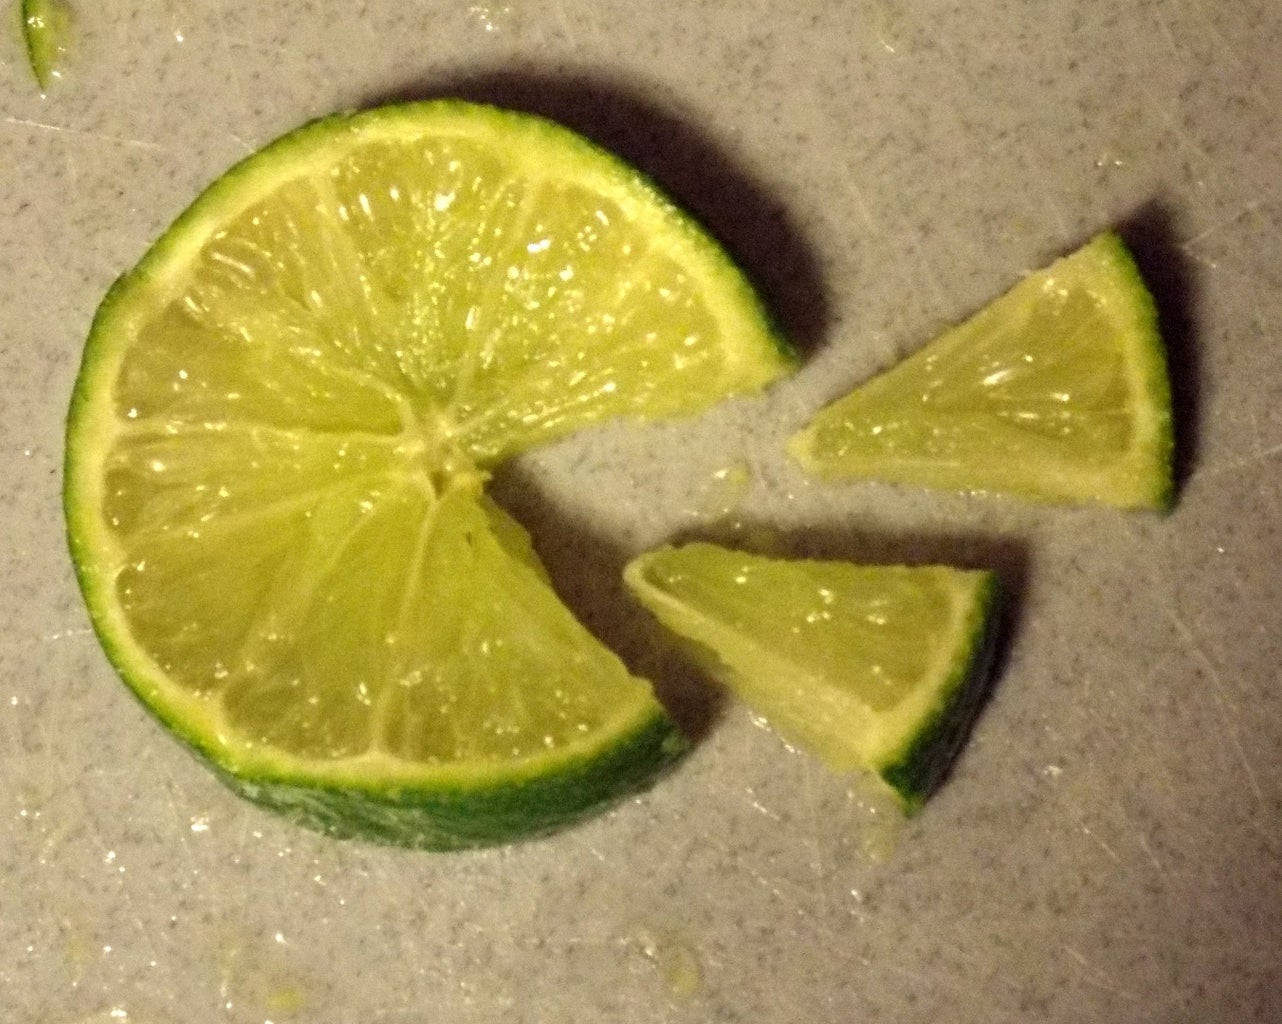 Cut the Lime Into Slices, Then Cut Each Slice Into Small Triangles.